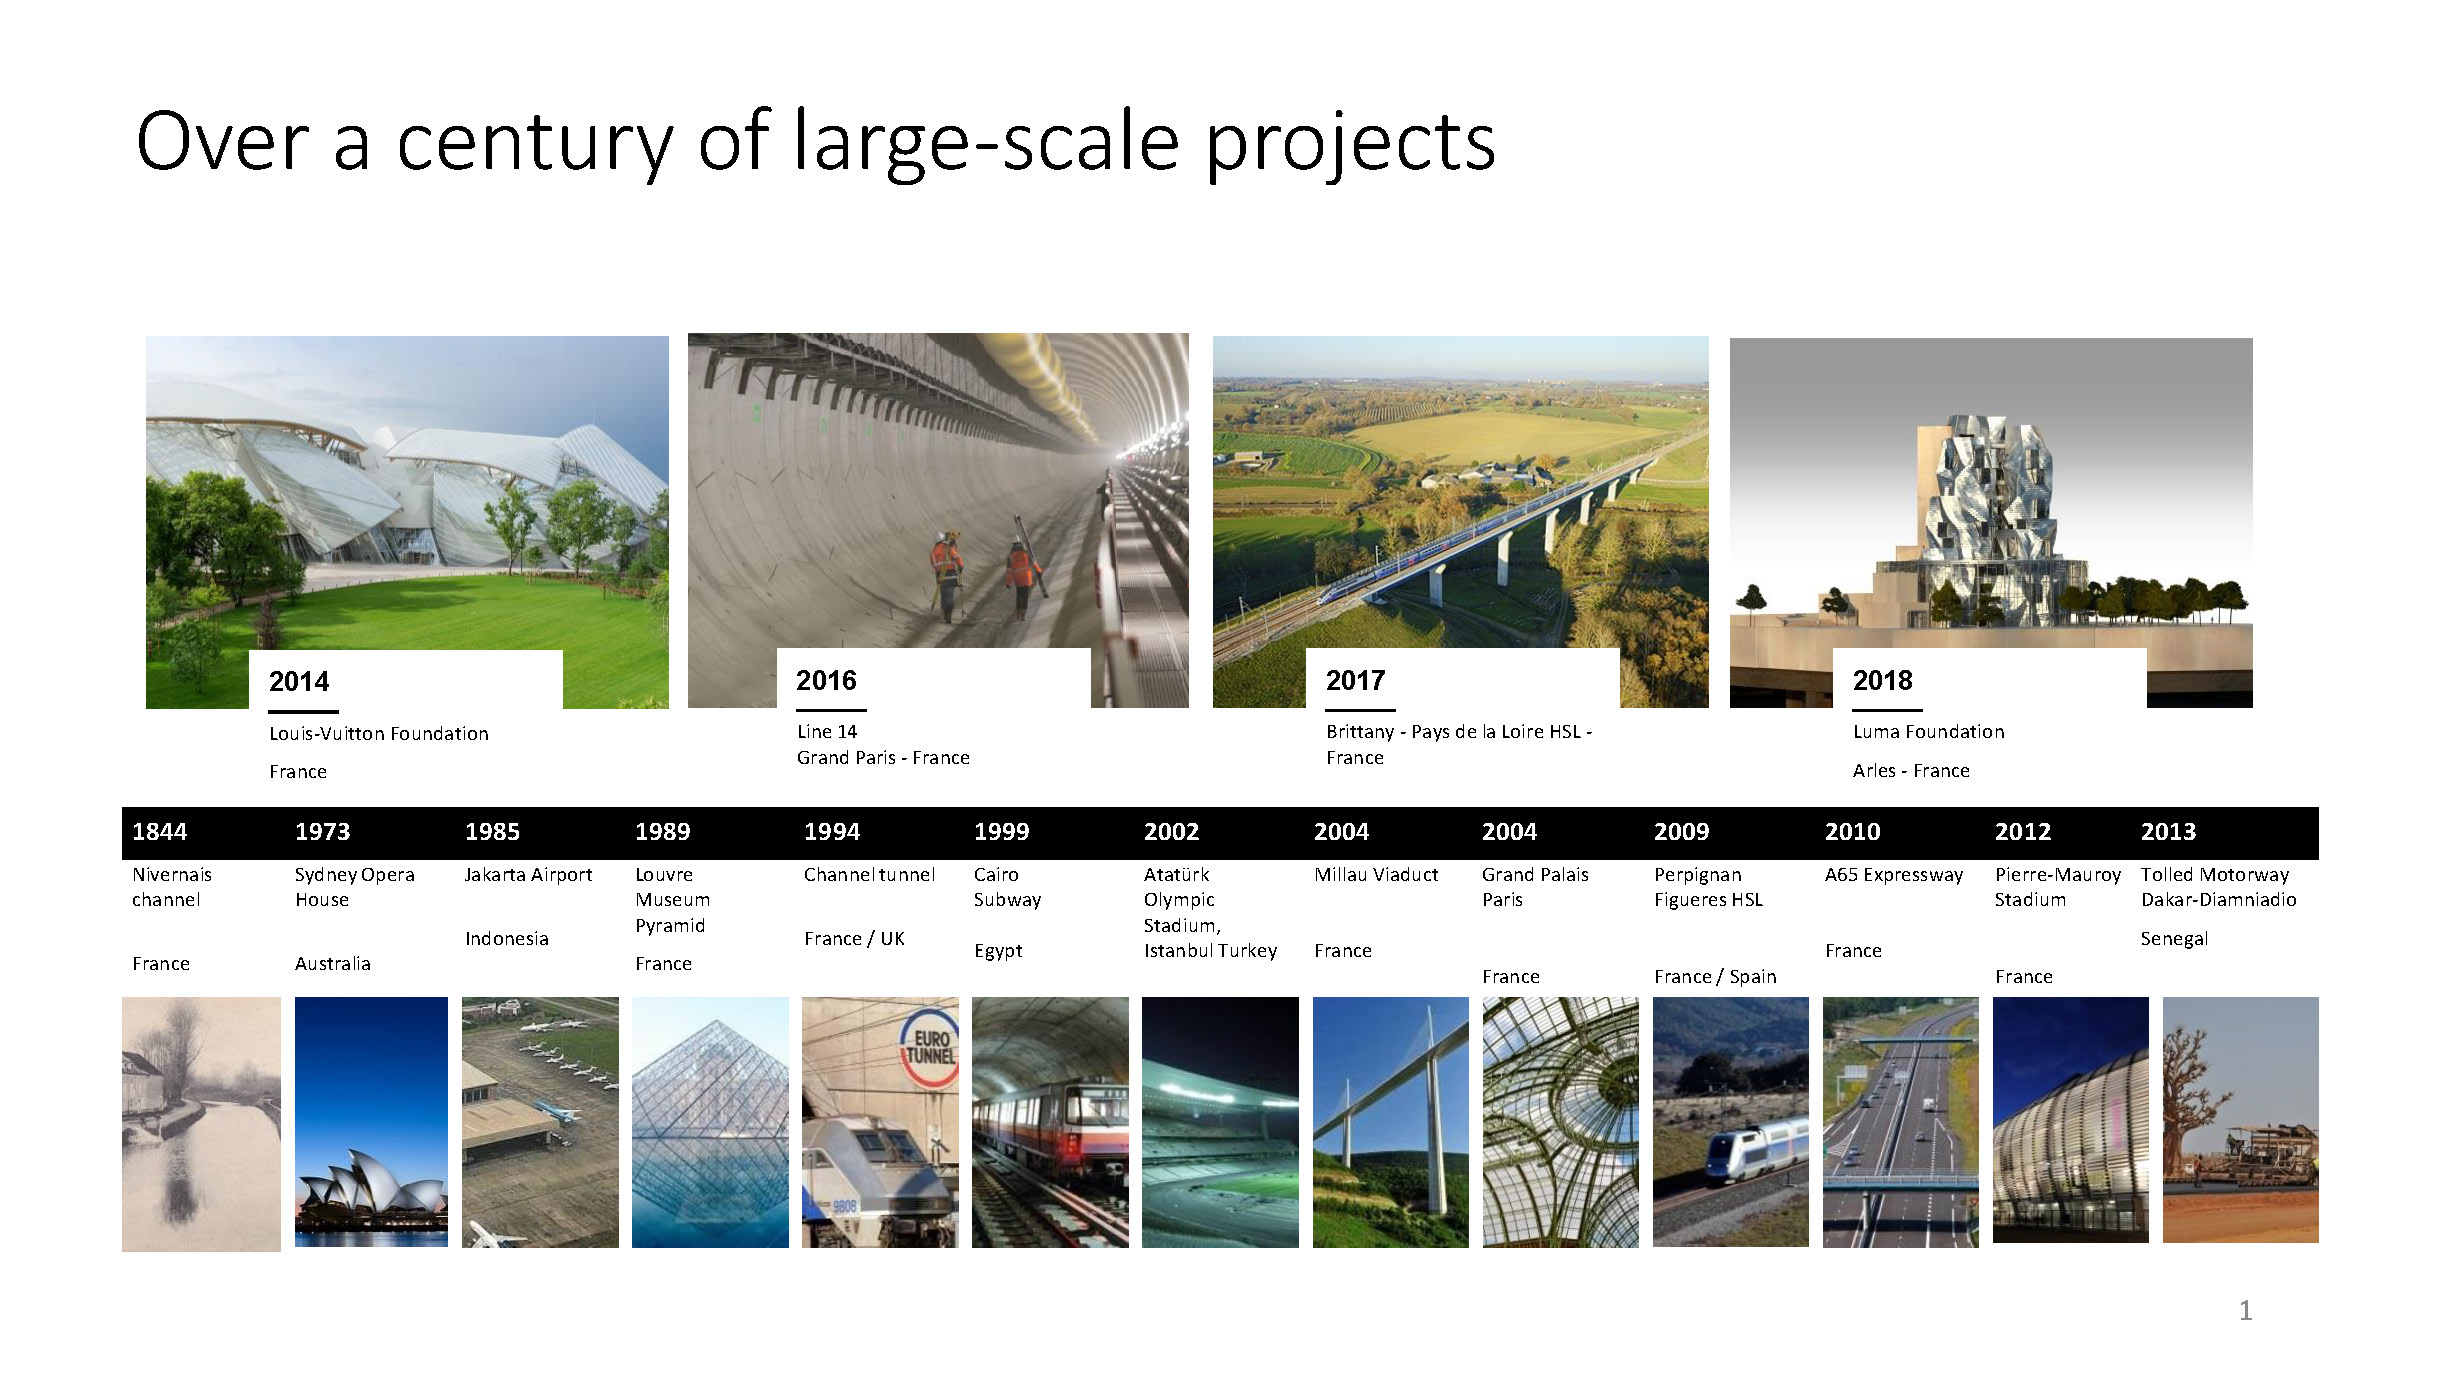 Over a Century of large scall projects